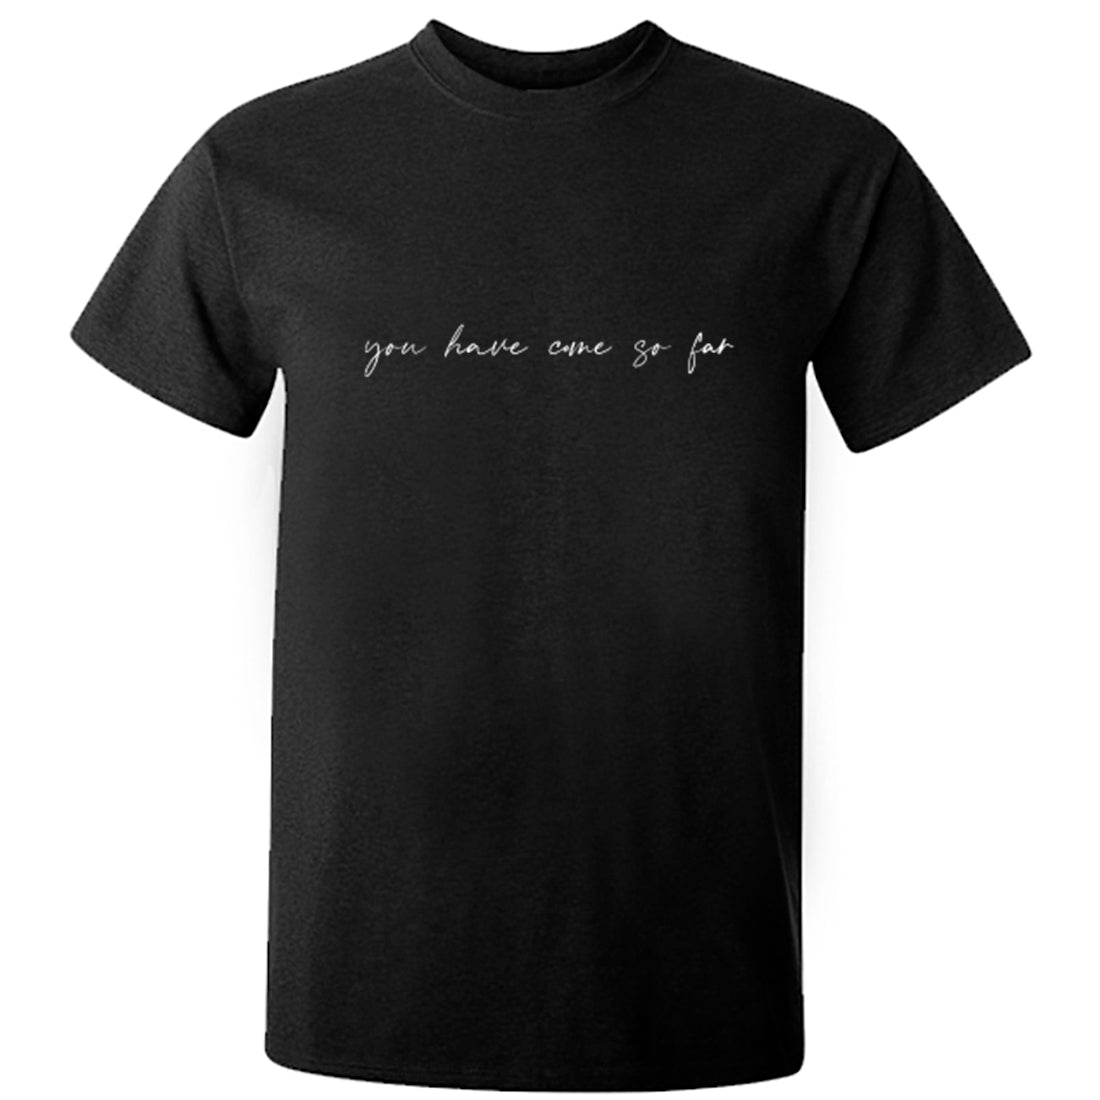 You Have Come So Far Unisex Fit T-Shirt K2553 - Illustrated Identity Ltd.